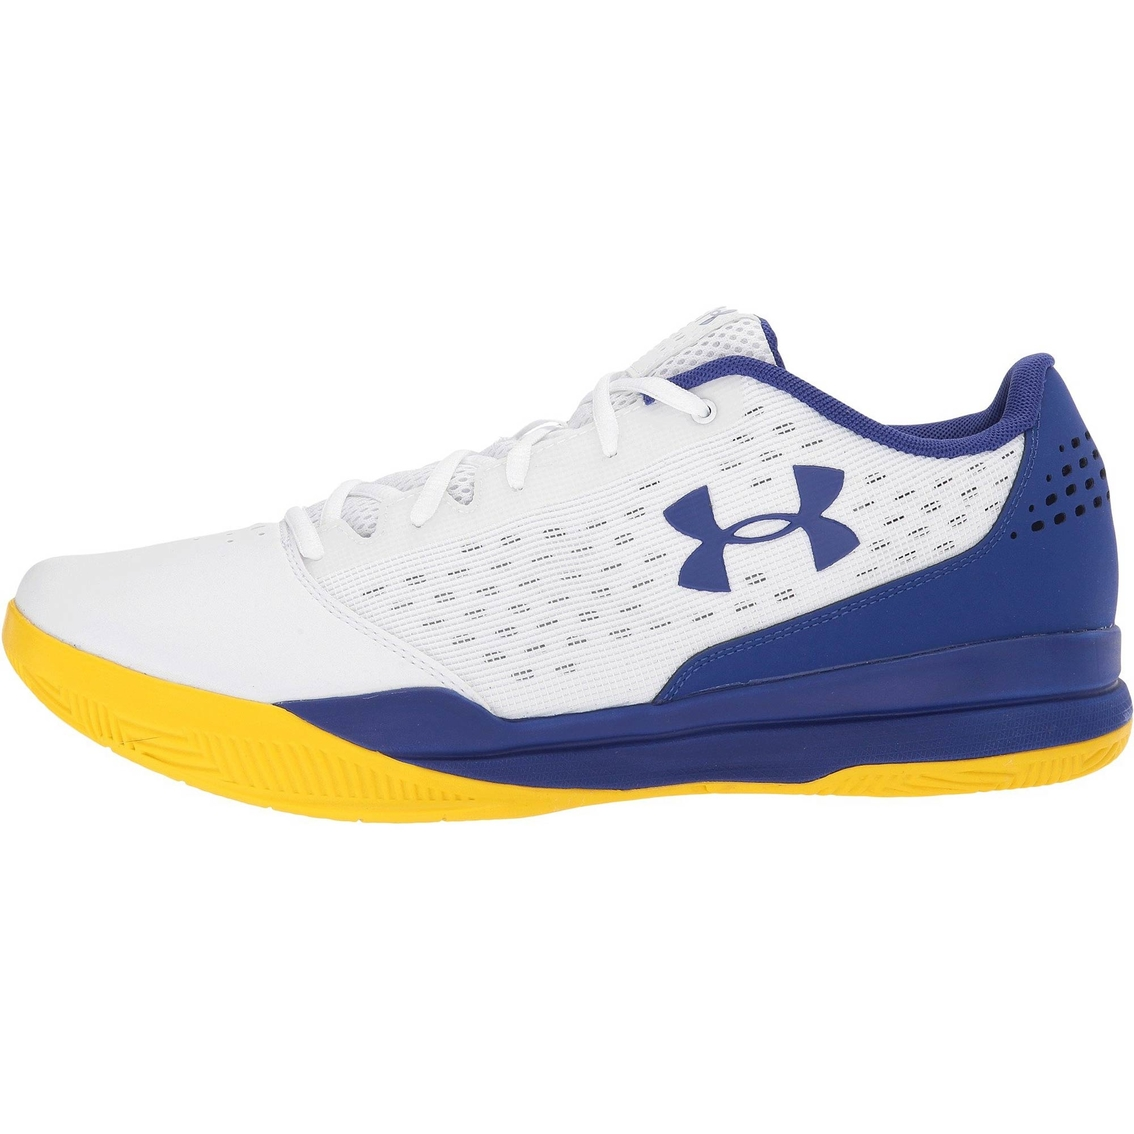 new style 19bc6 337e0 Under Armour Men s Jet Low Basketball Shoes